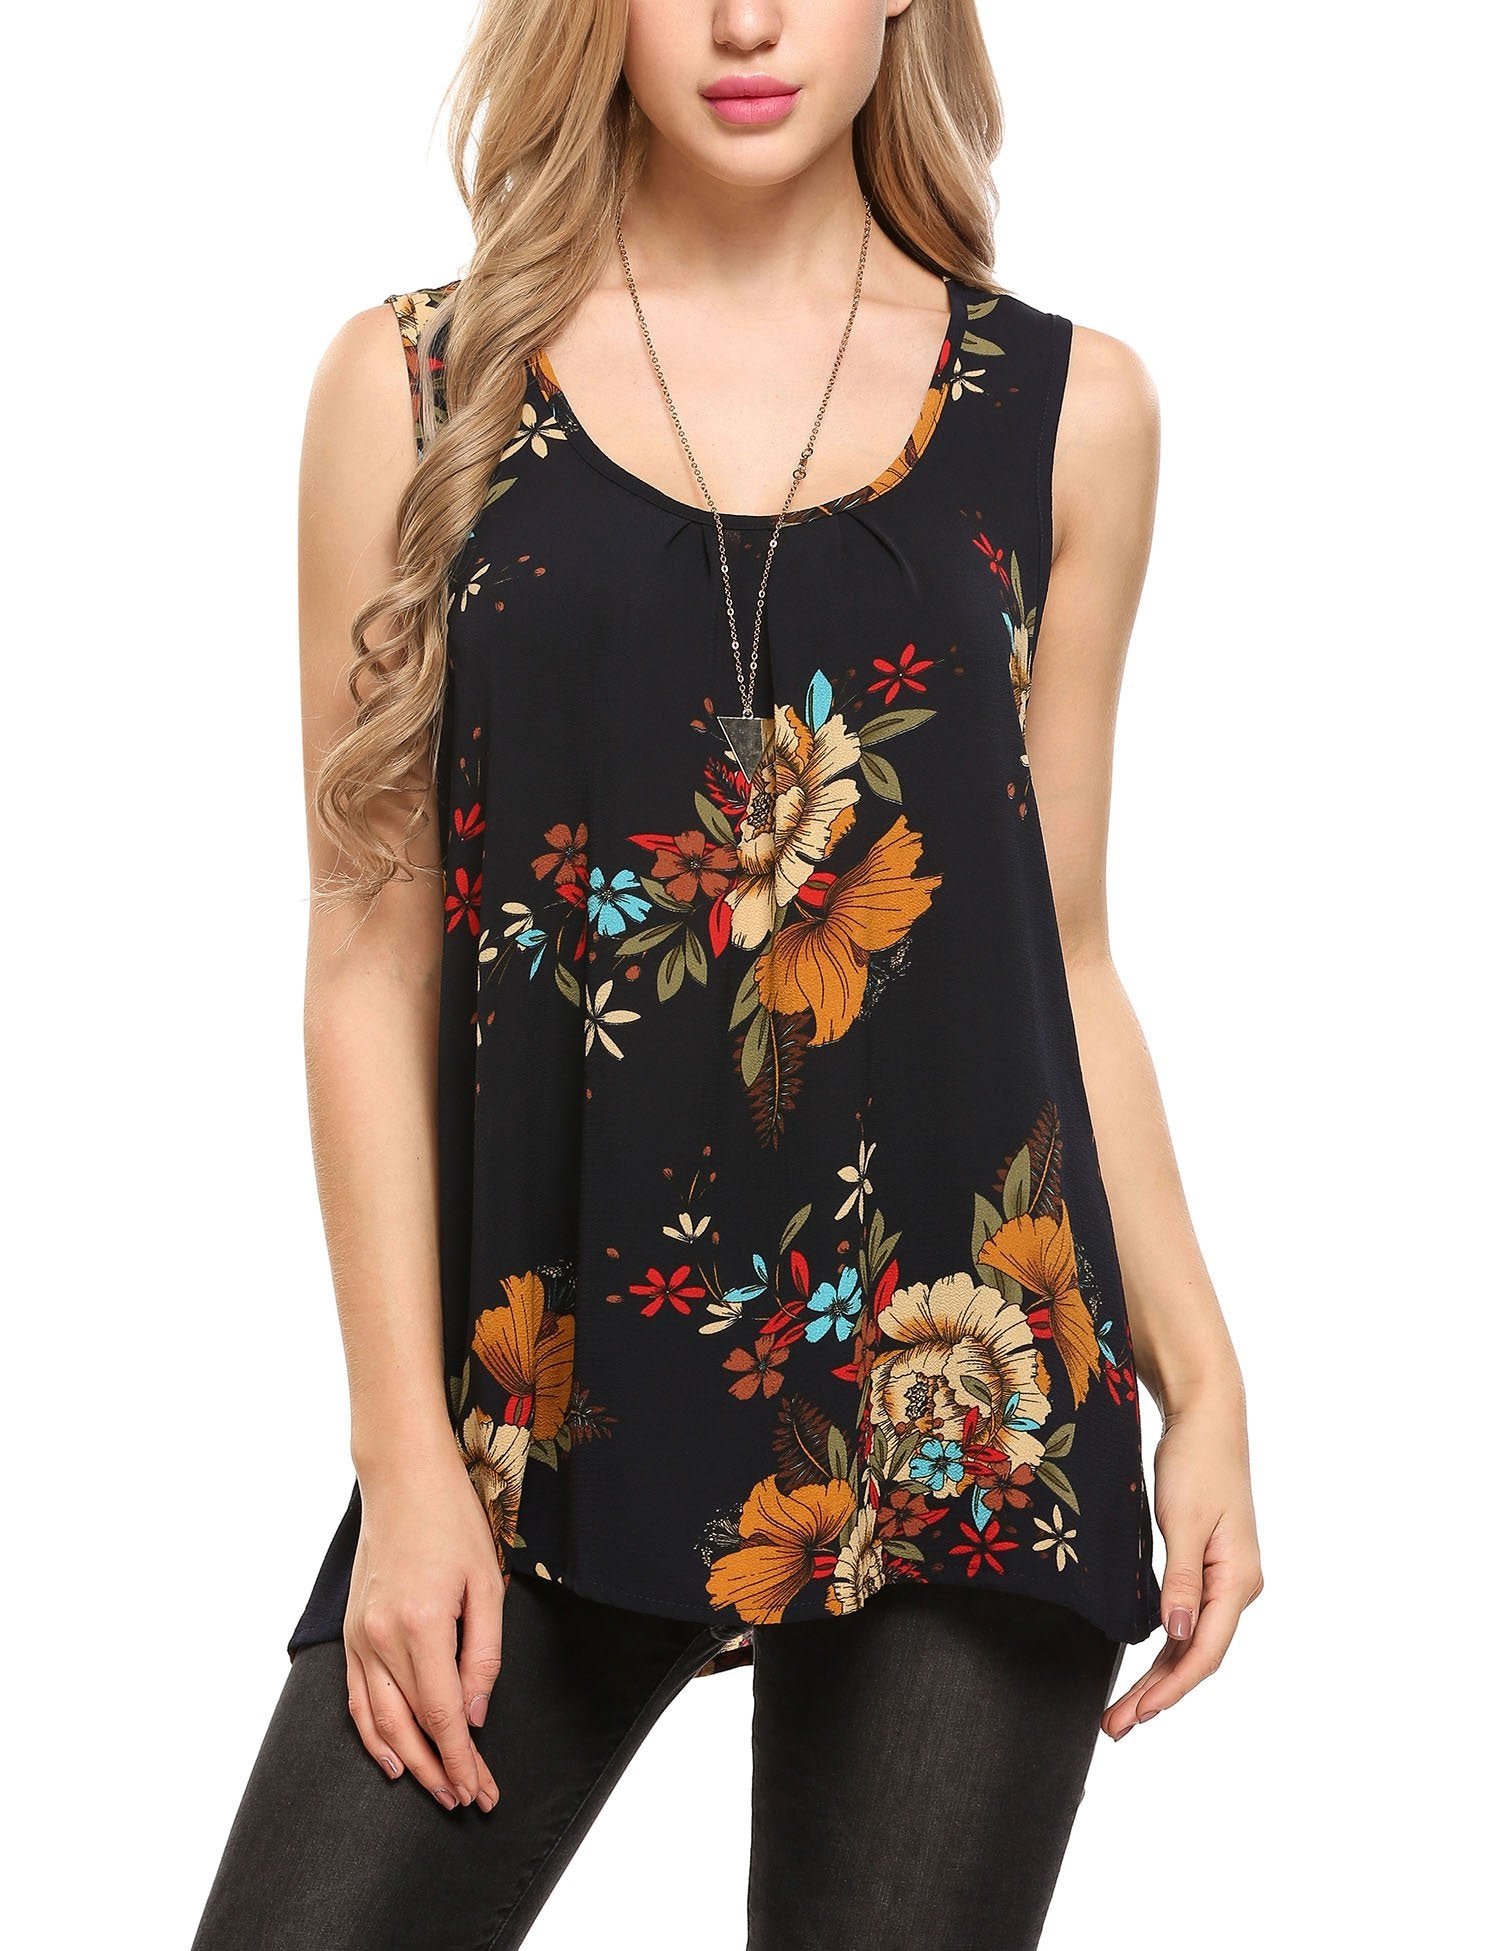 Zeagoo Women/'s Sleeveless Summer Flowy Top Chiffon Floral Loose Tunic Tank Tops, Floral 1, X-Large - wiihuu